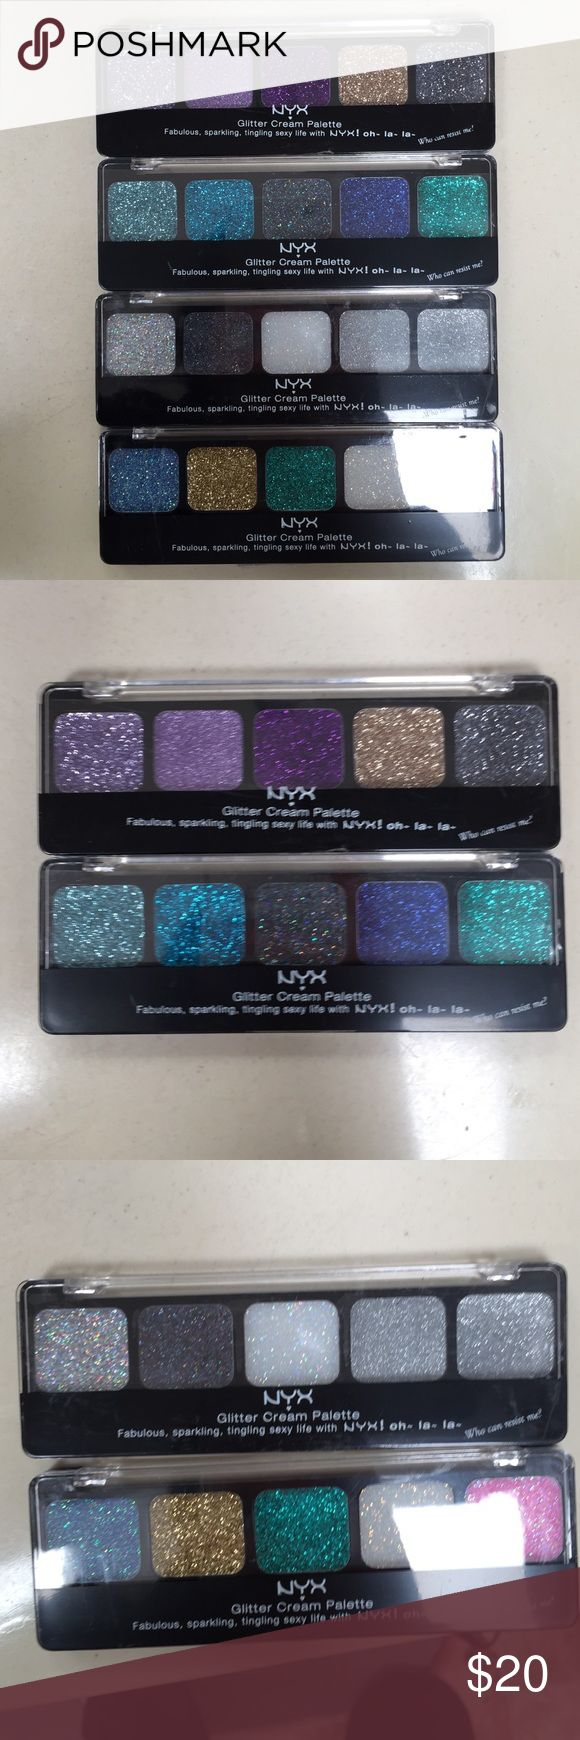 NYX Glitter Cream Palette Bundle Brand new. Includes 4 different colors NYX Makeup